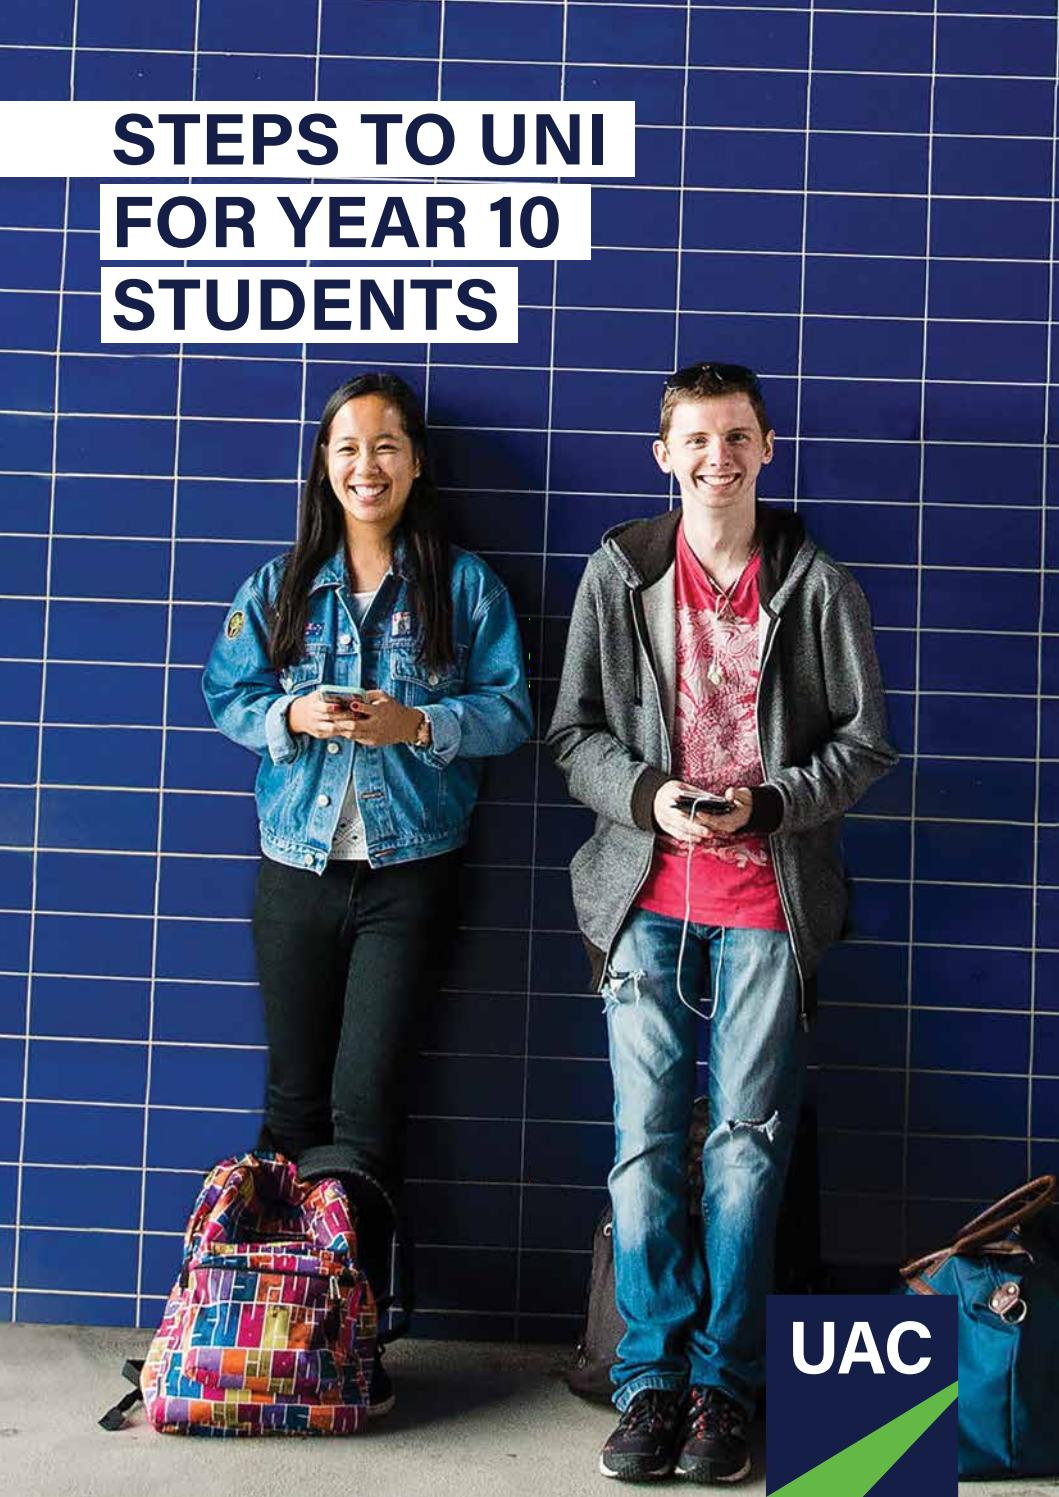 Download Steps to Uni for Year 10 Students